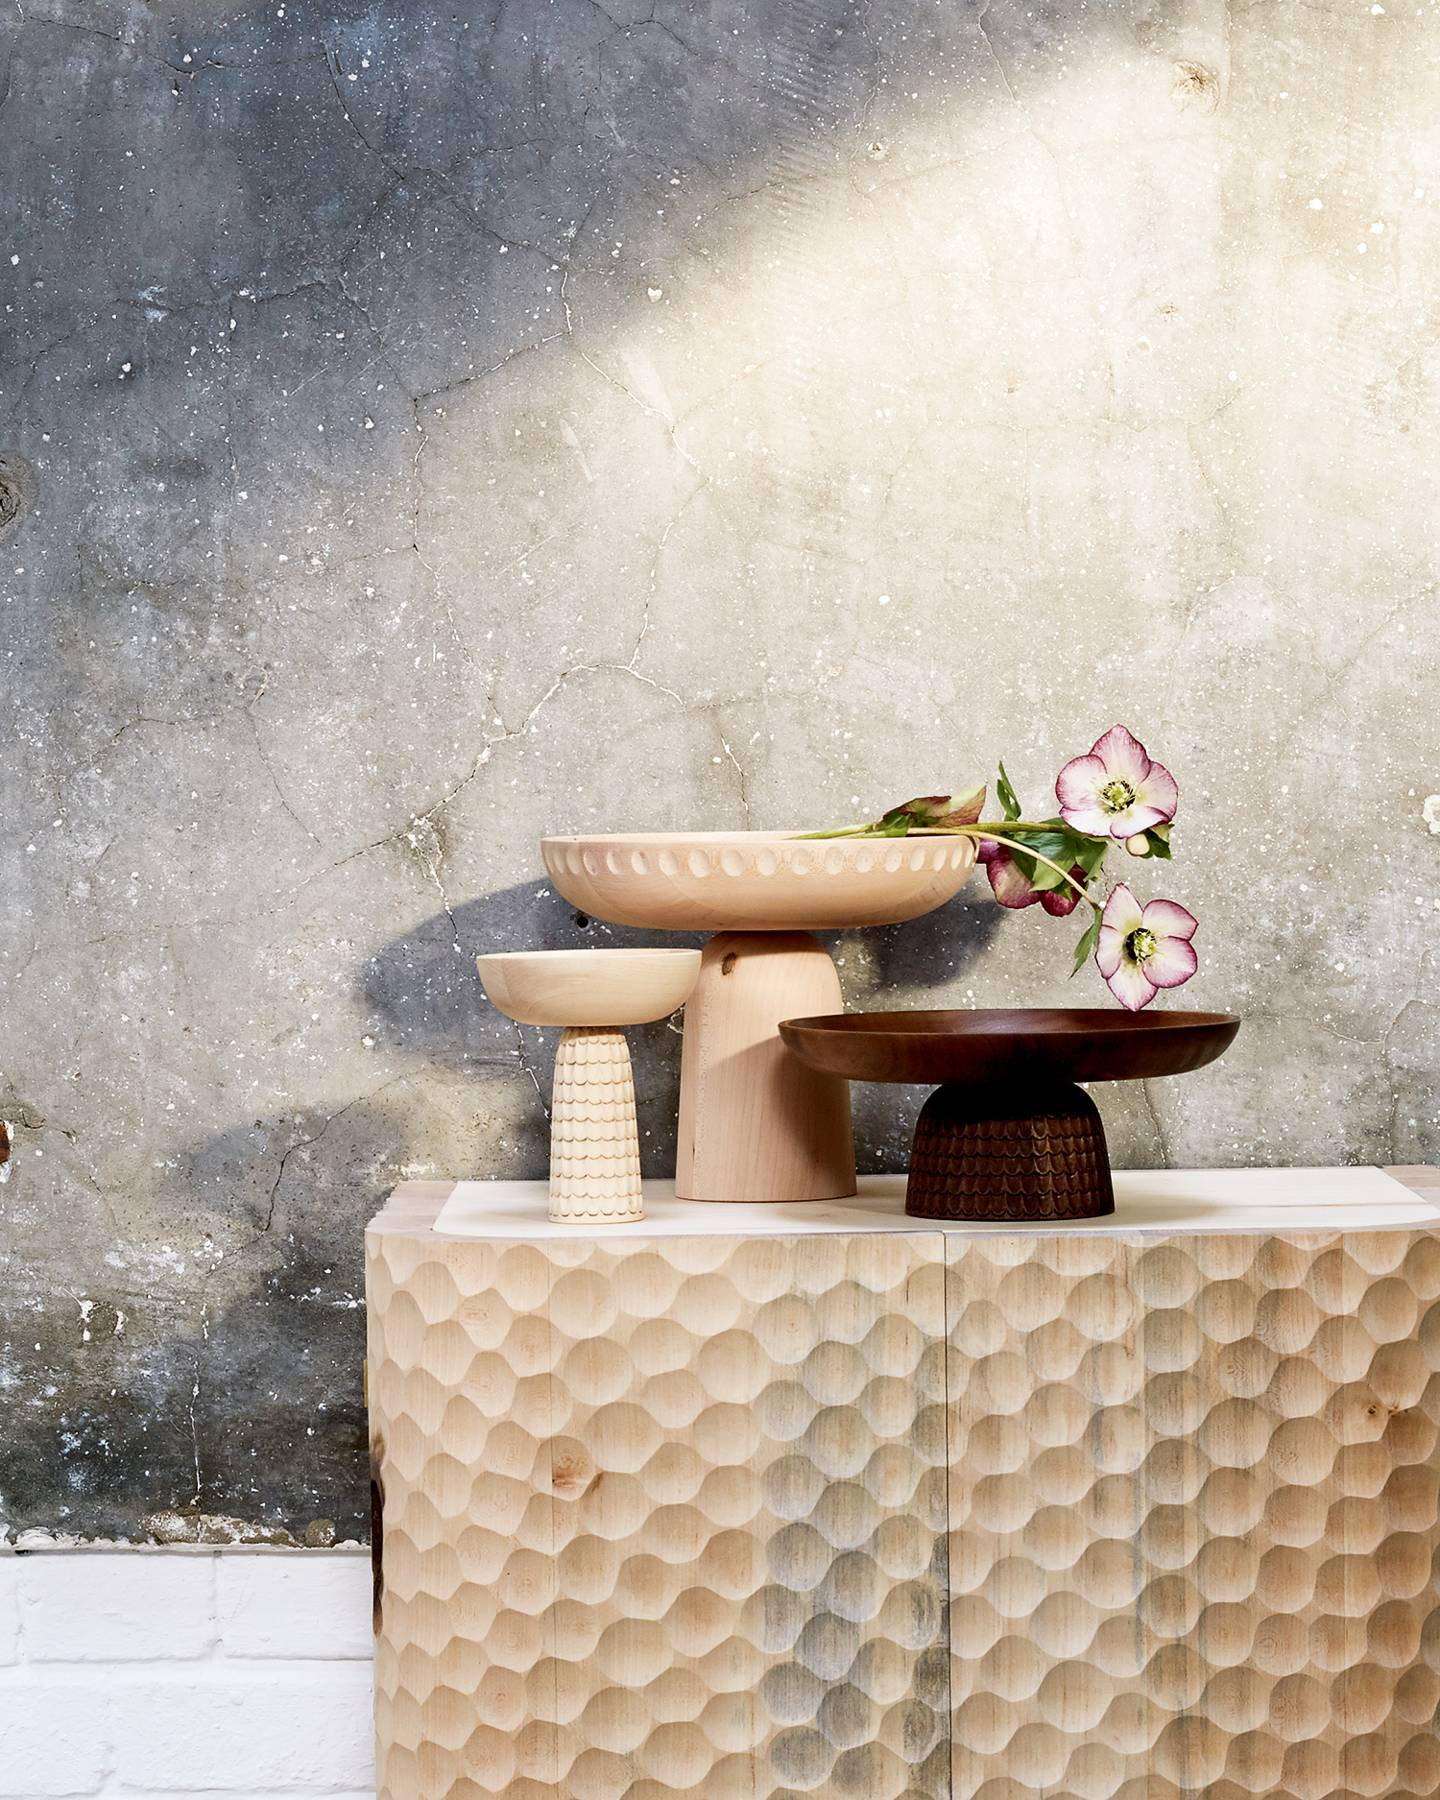 A decorating scheme that highlights the singular beauty of textured pieces